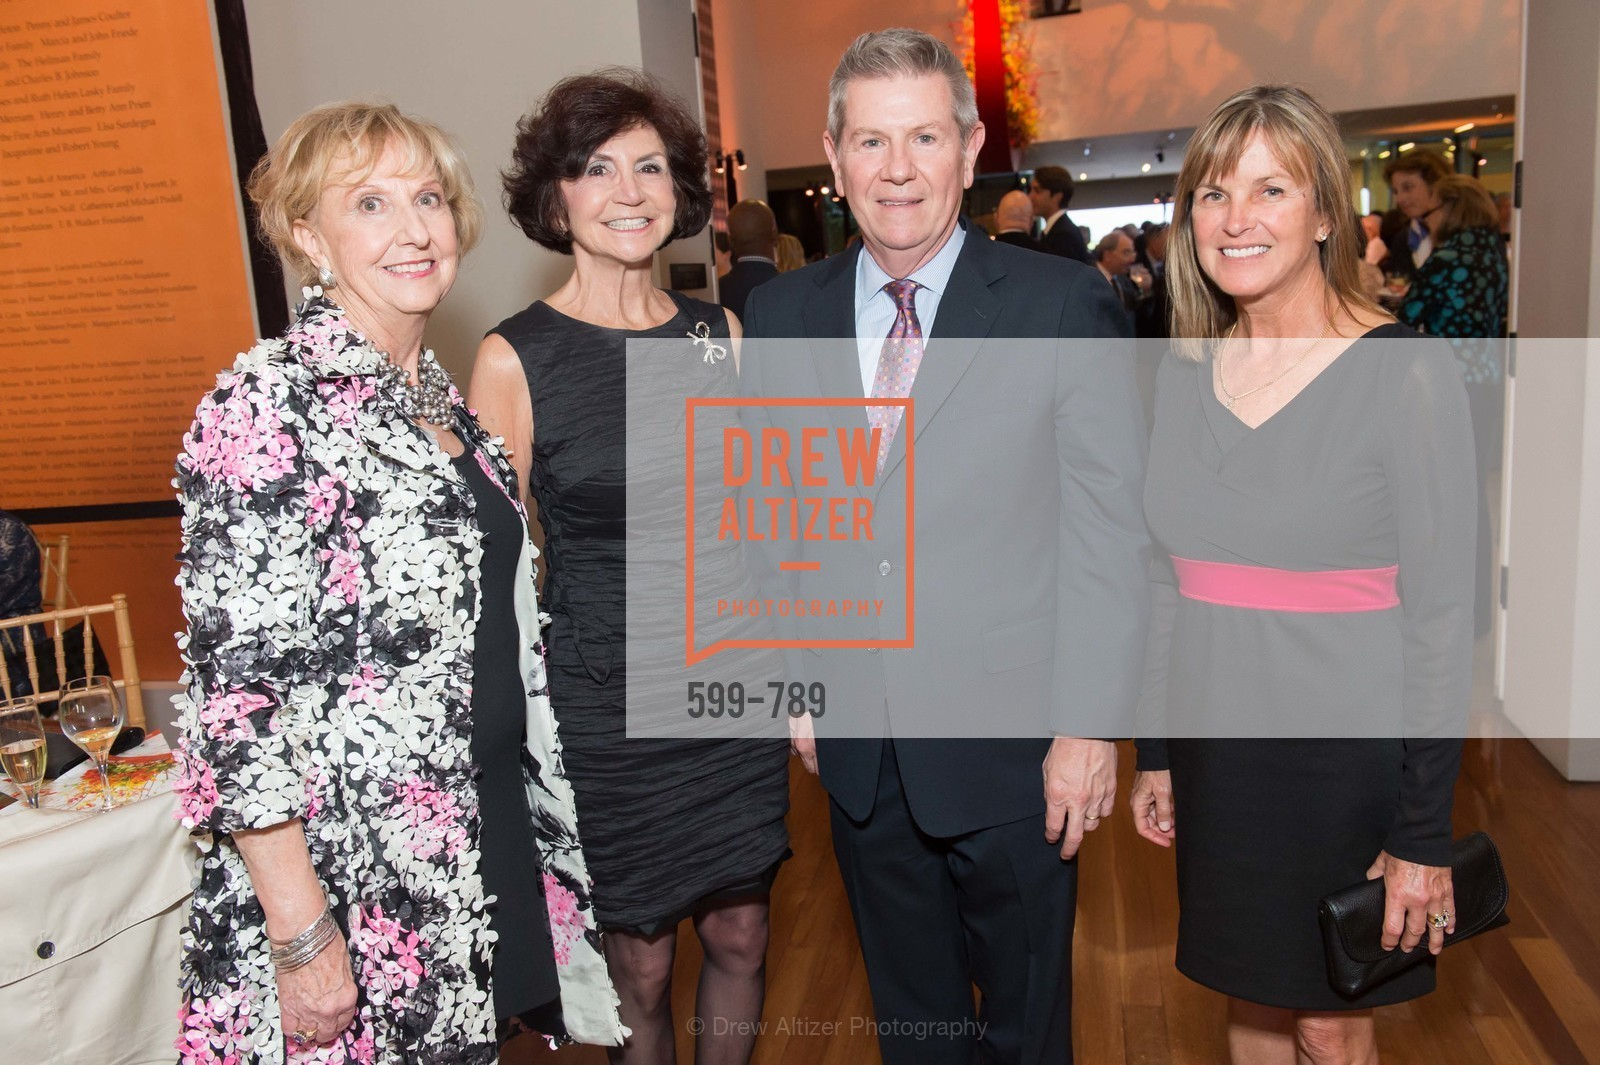 Judith Heuser, Pam Martori, Richard Benefield, Rayna Bernard, ALONZO KING LINE'S Ballet Spring Gala 2015, US, April 11th, 2015,Drew Altizer, Drew Altizer Photography, full-service agency, private events, San Francisco photographer, photographer california